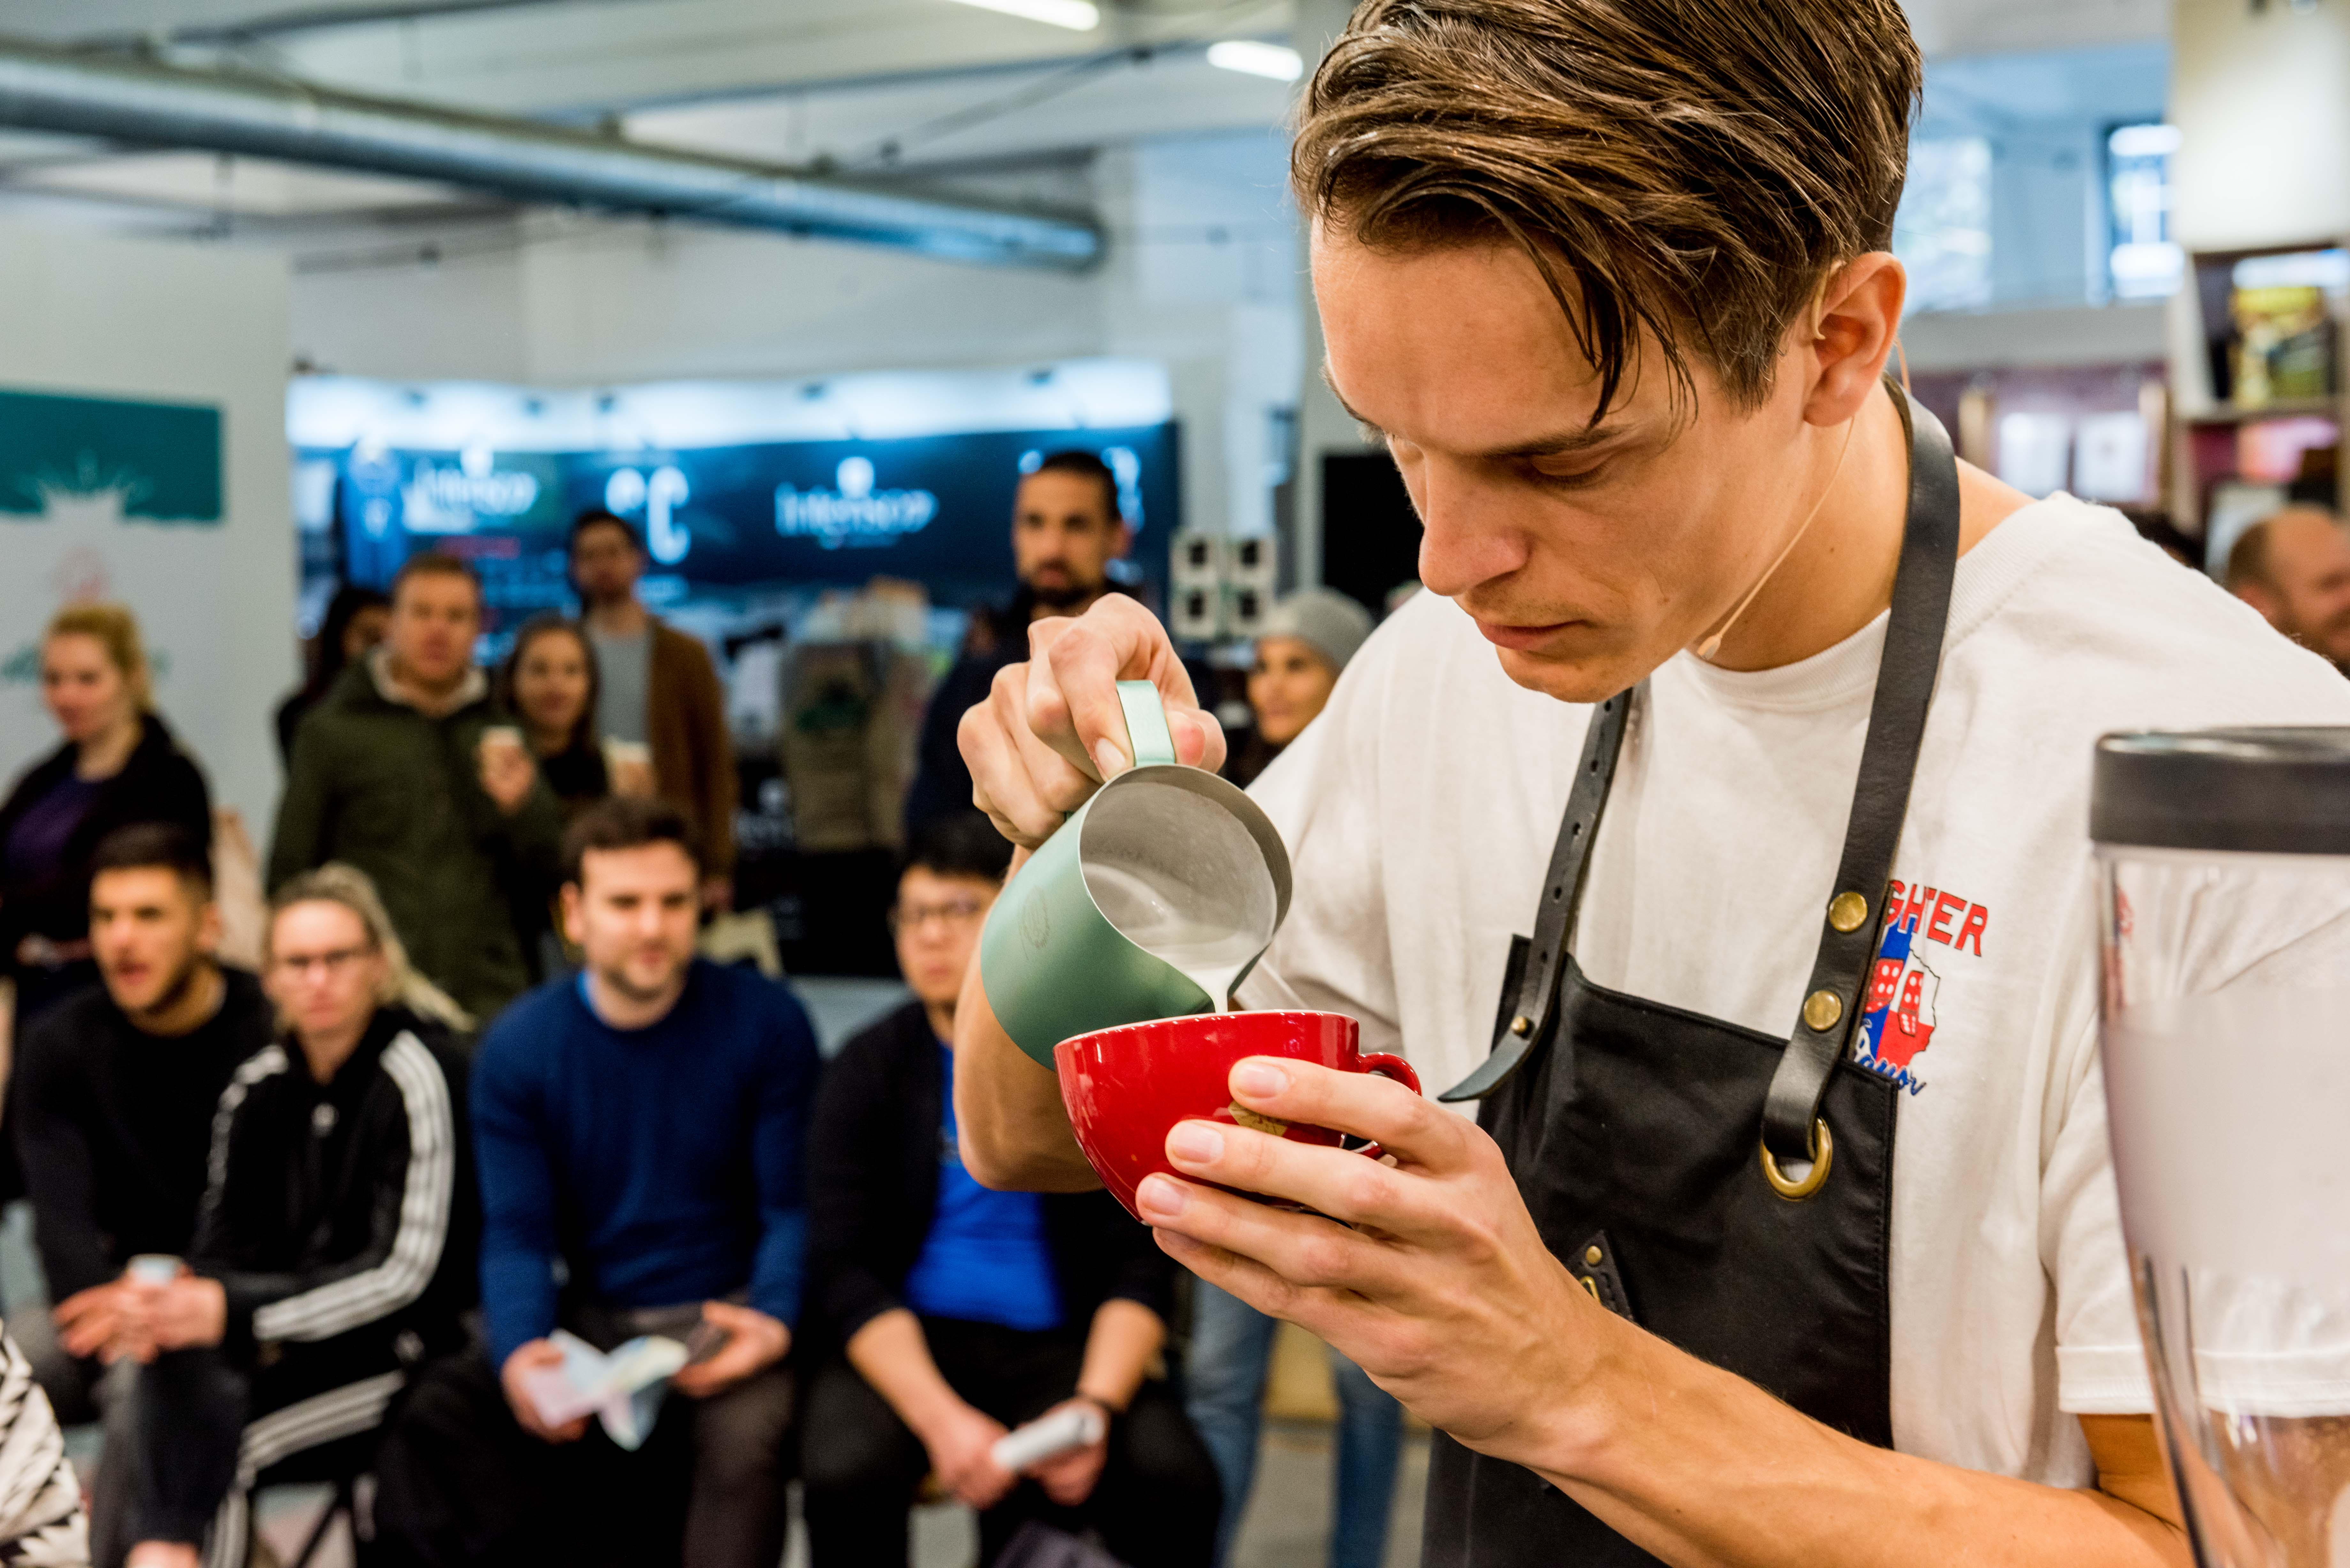 Rob Clarijs pours a latte into a red mug while onlookers watch.